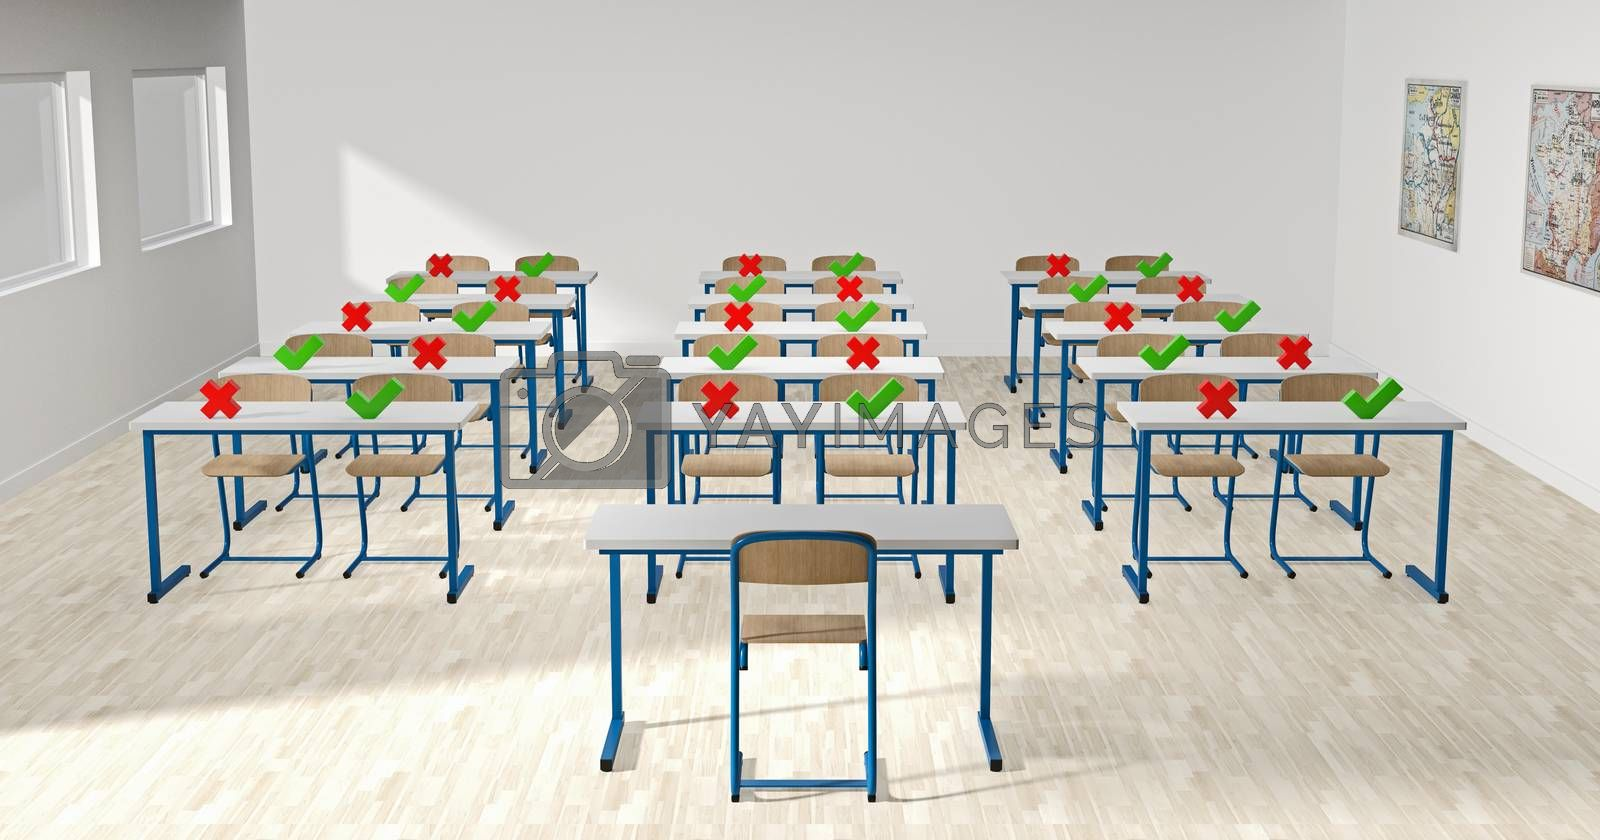 back to school with coronavirus - classroom by Fox_Dsign